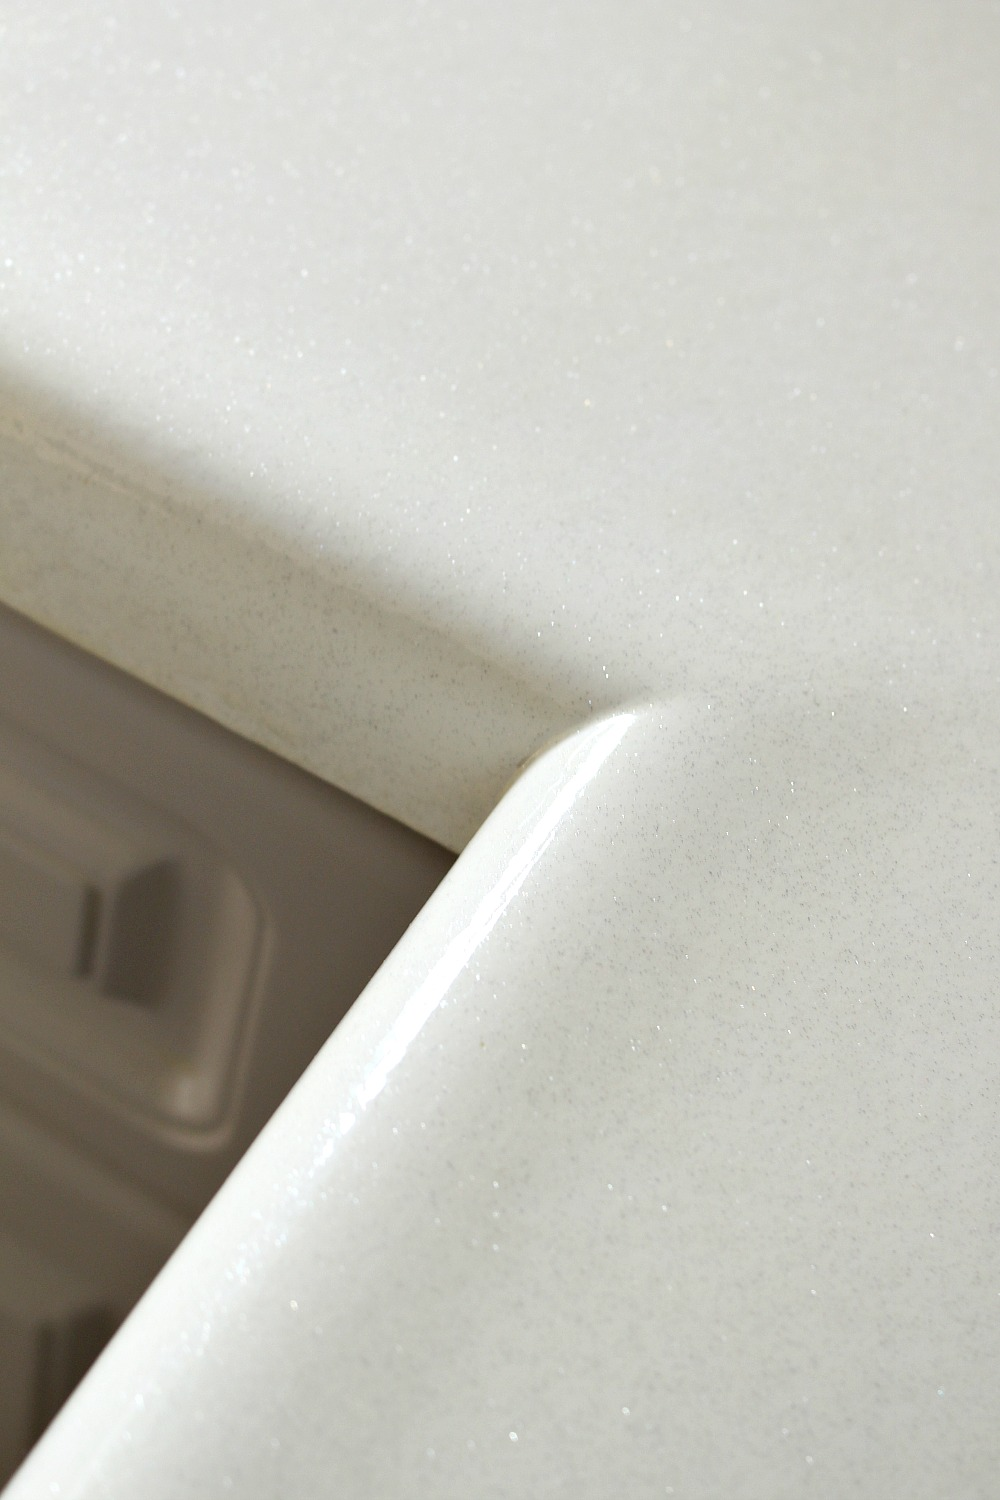 HOW TO REPAINT LAMINATE COUNTERS